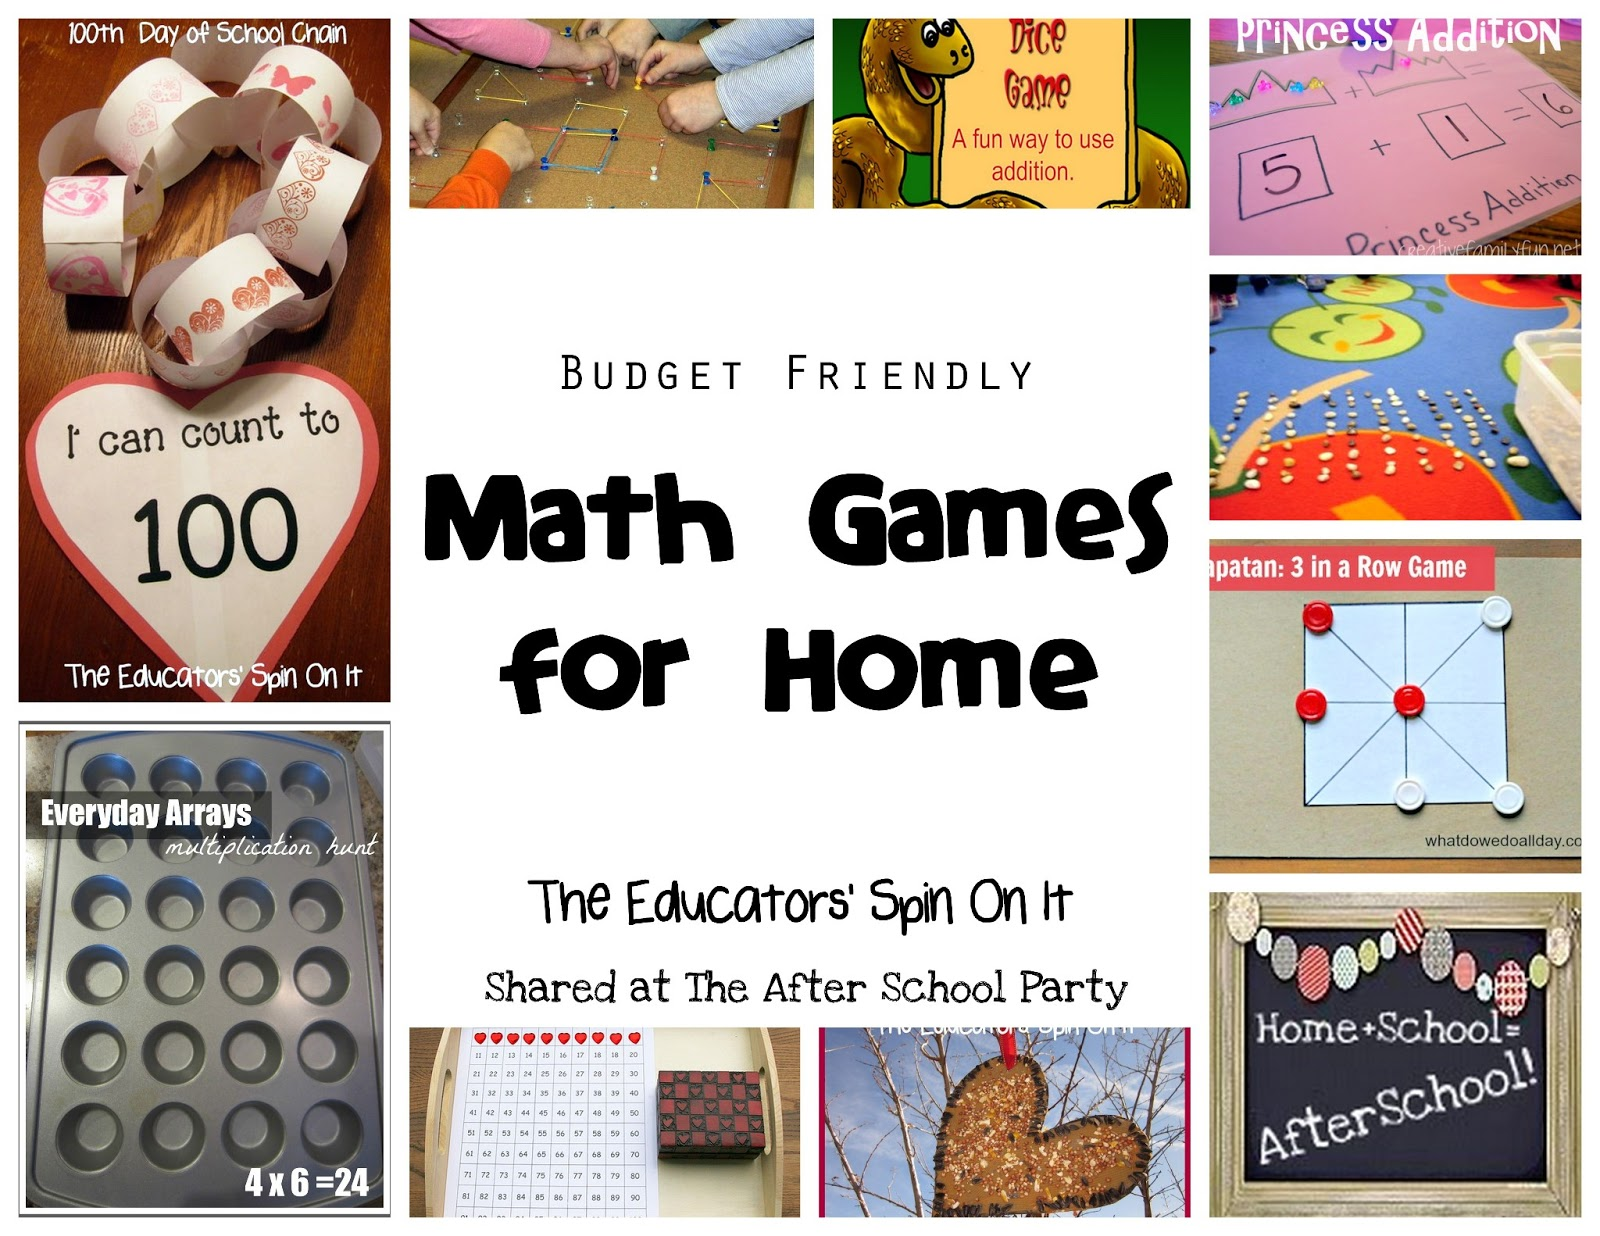 Budget Friendly Math Games for Home {After School Link Up} - The ...